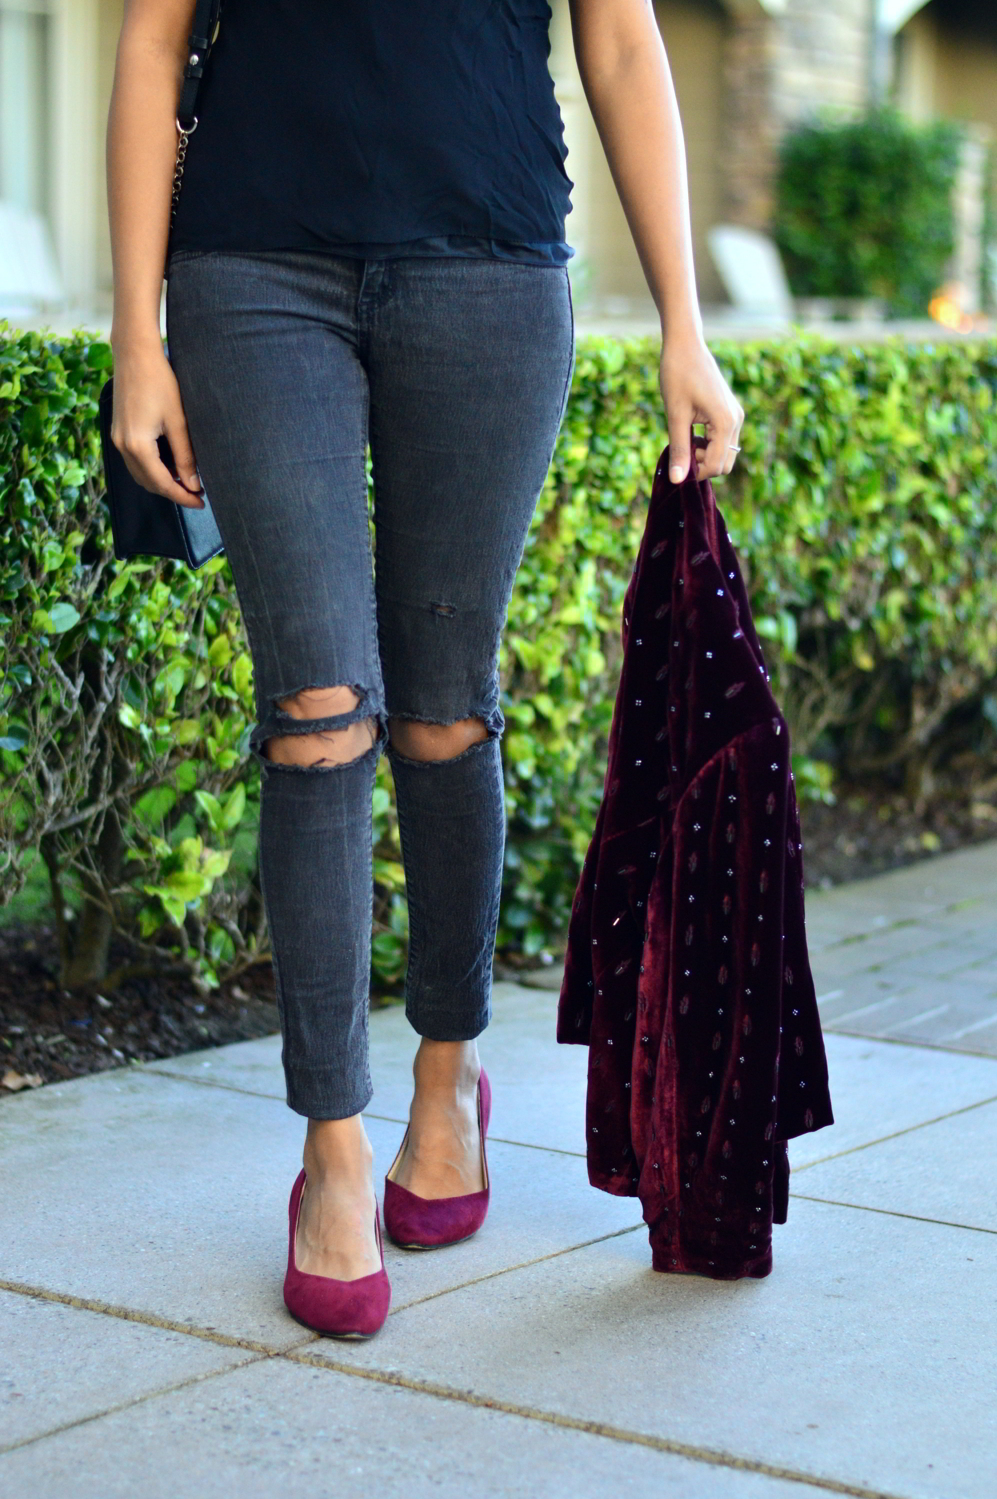 velvet-embellished-blazer-holiday-party-style-burgundy-black-blogger-outfit 9